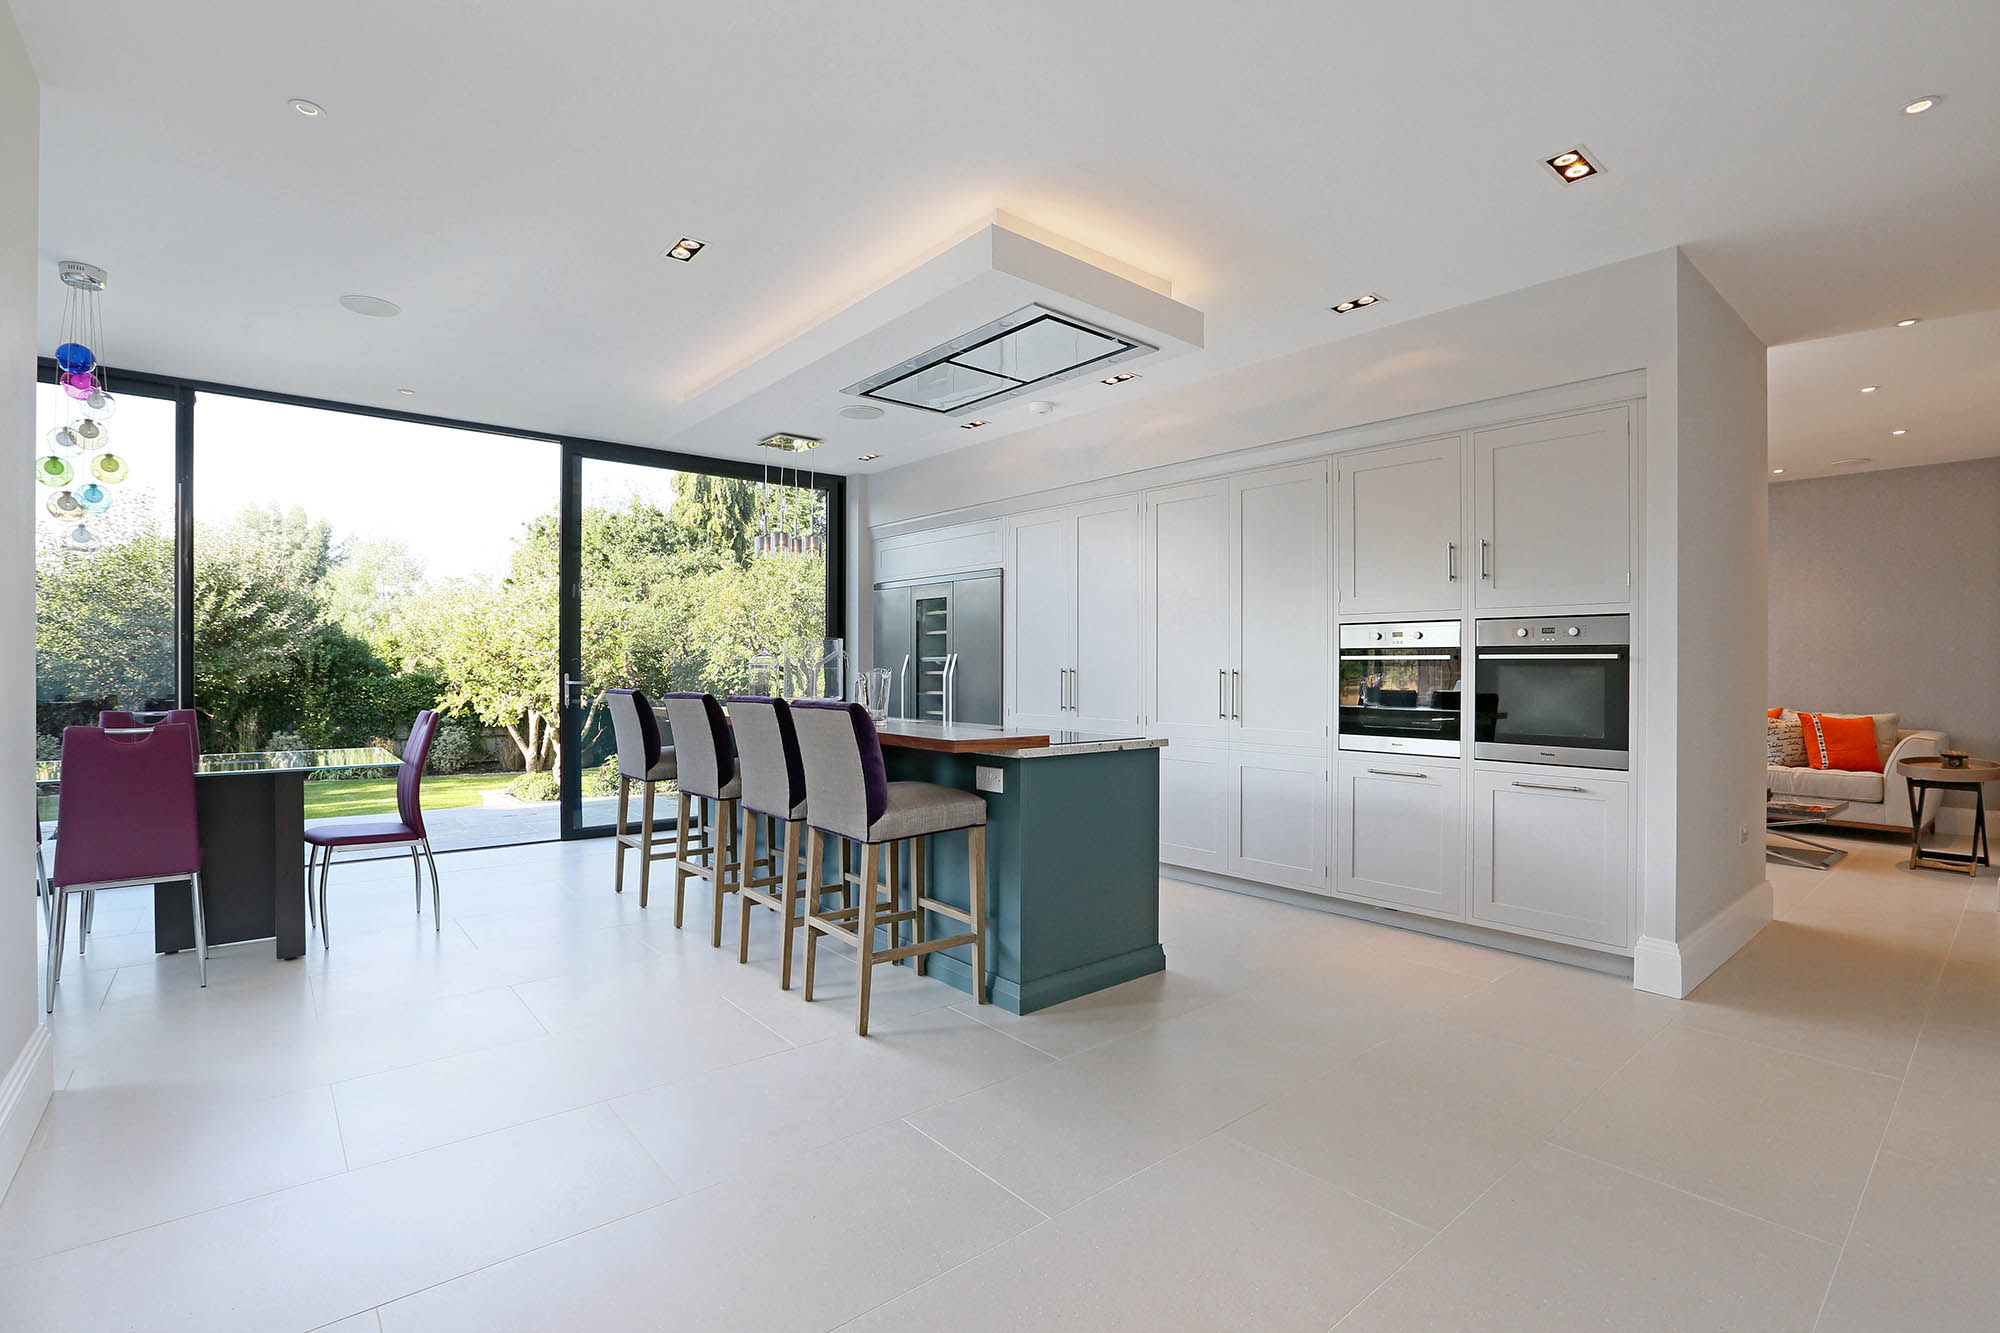 Interior of completed white spacious open-plan kitchen extension for Putney home restoration project